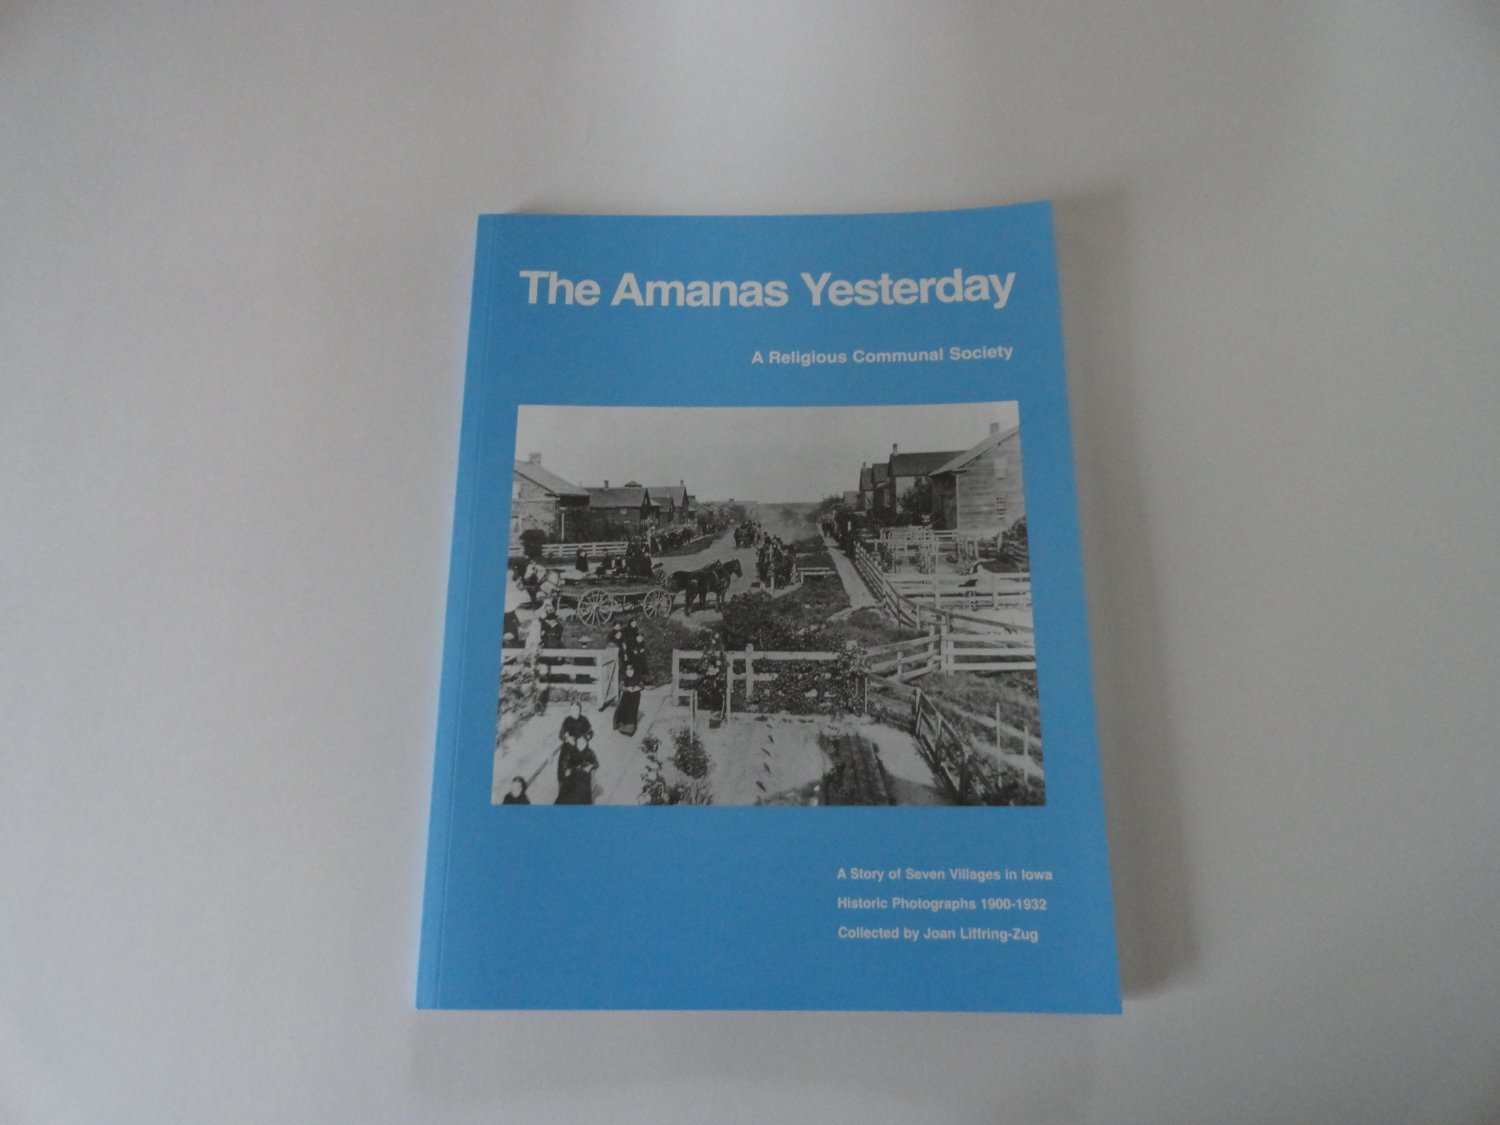 The Amanas Yesterday: A Religious Communal Society